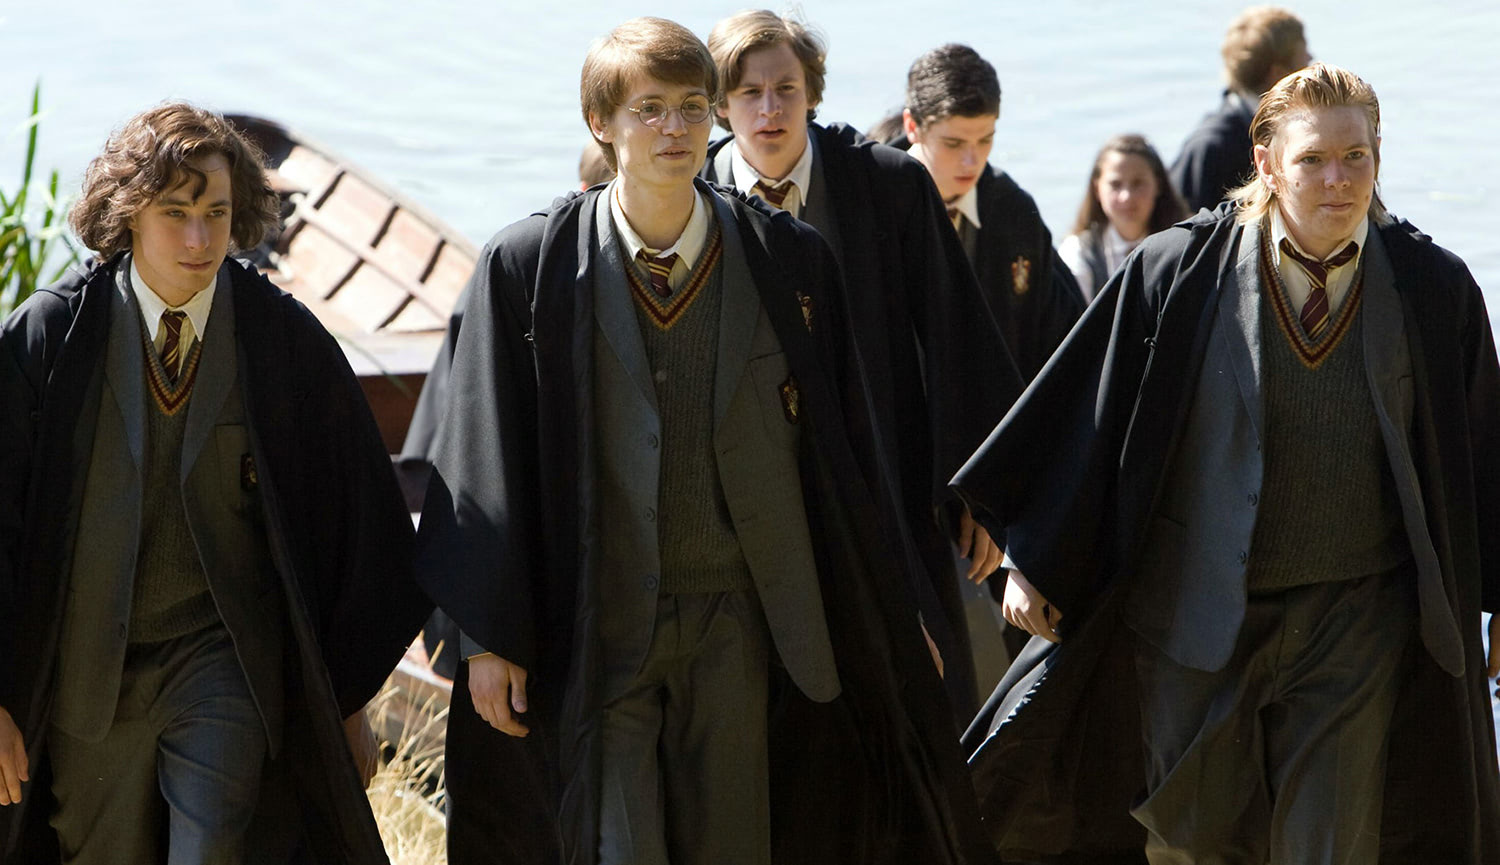 The young Marauders in 'Order of the Phoenix'